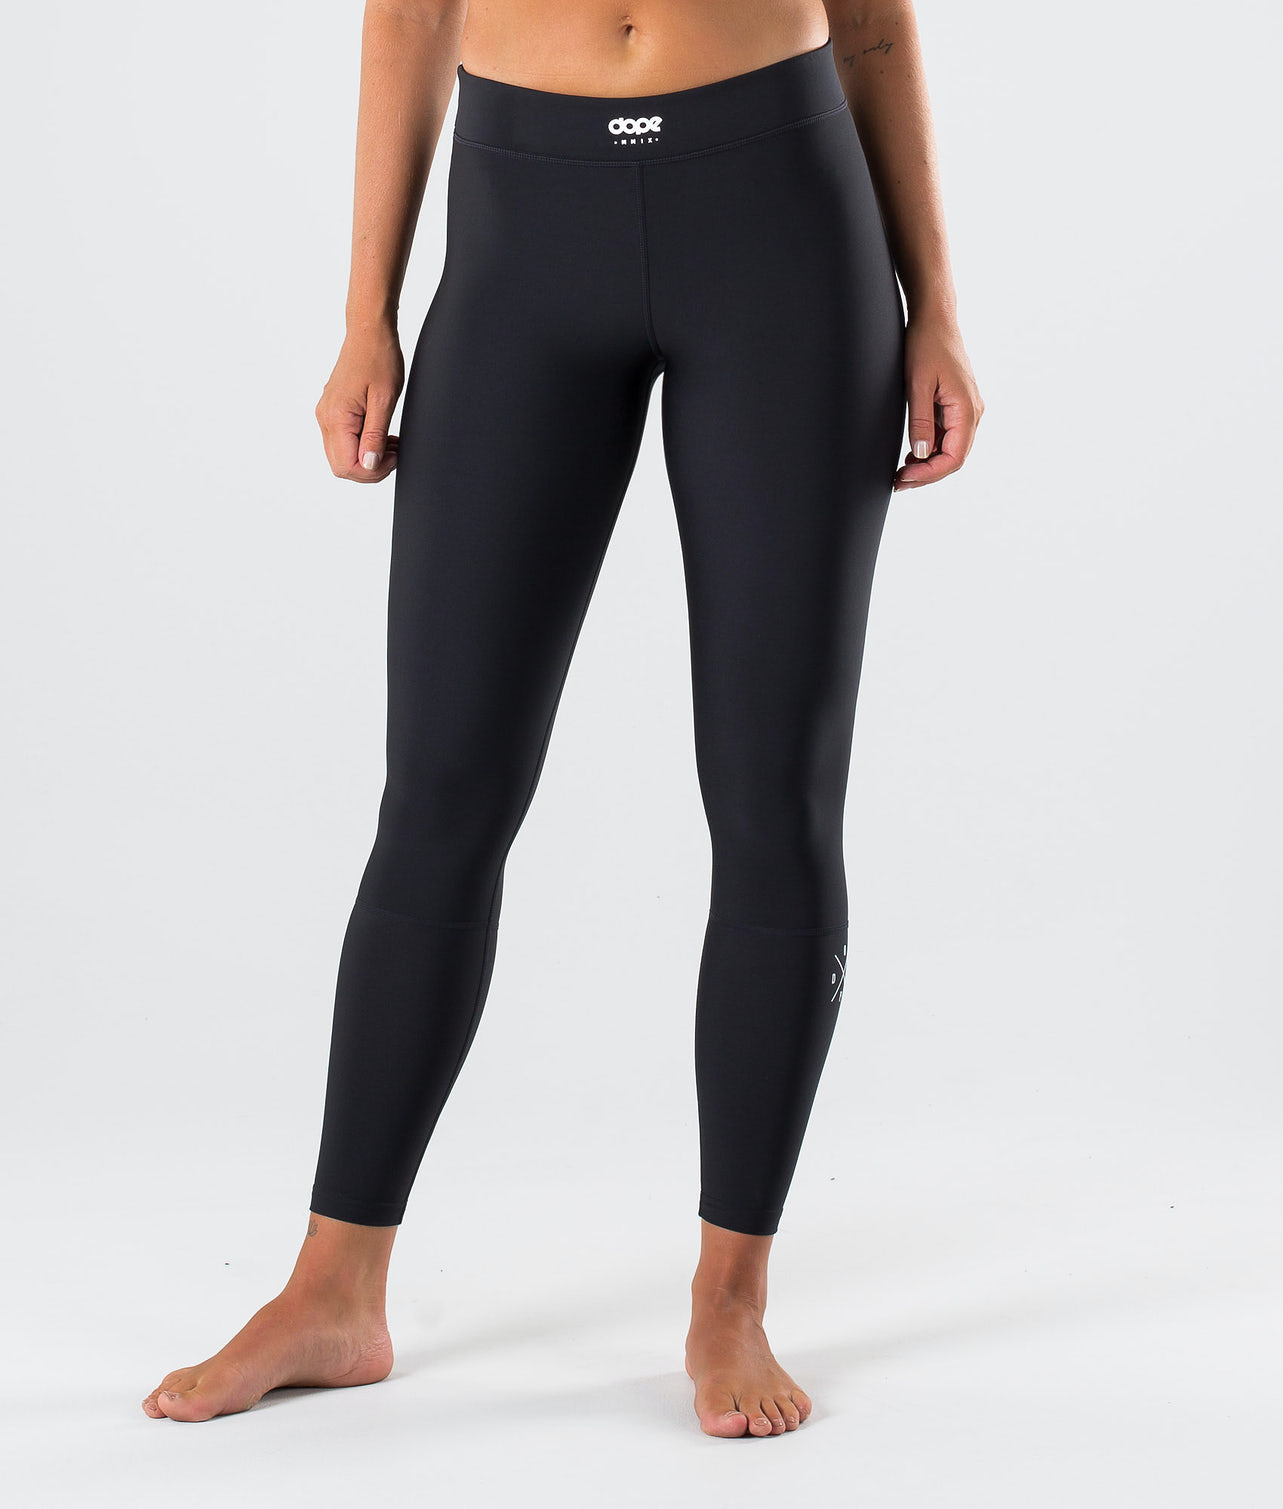 Buy Snuggle 2X-UP W Base Layer Pant from Dope at Ridestore.com - Always free shipping, free returns and 30 days money back guarantee